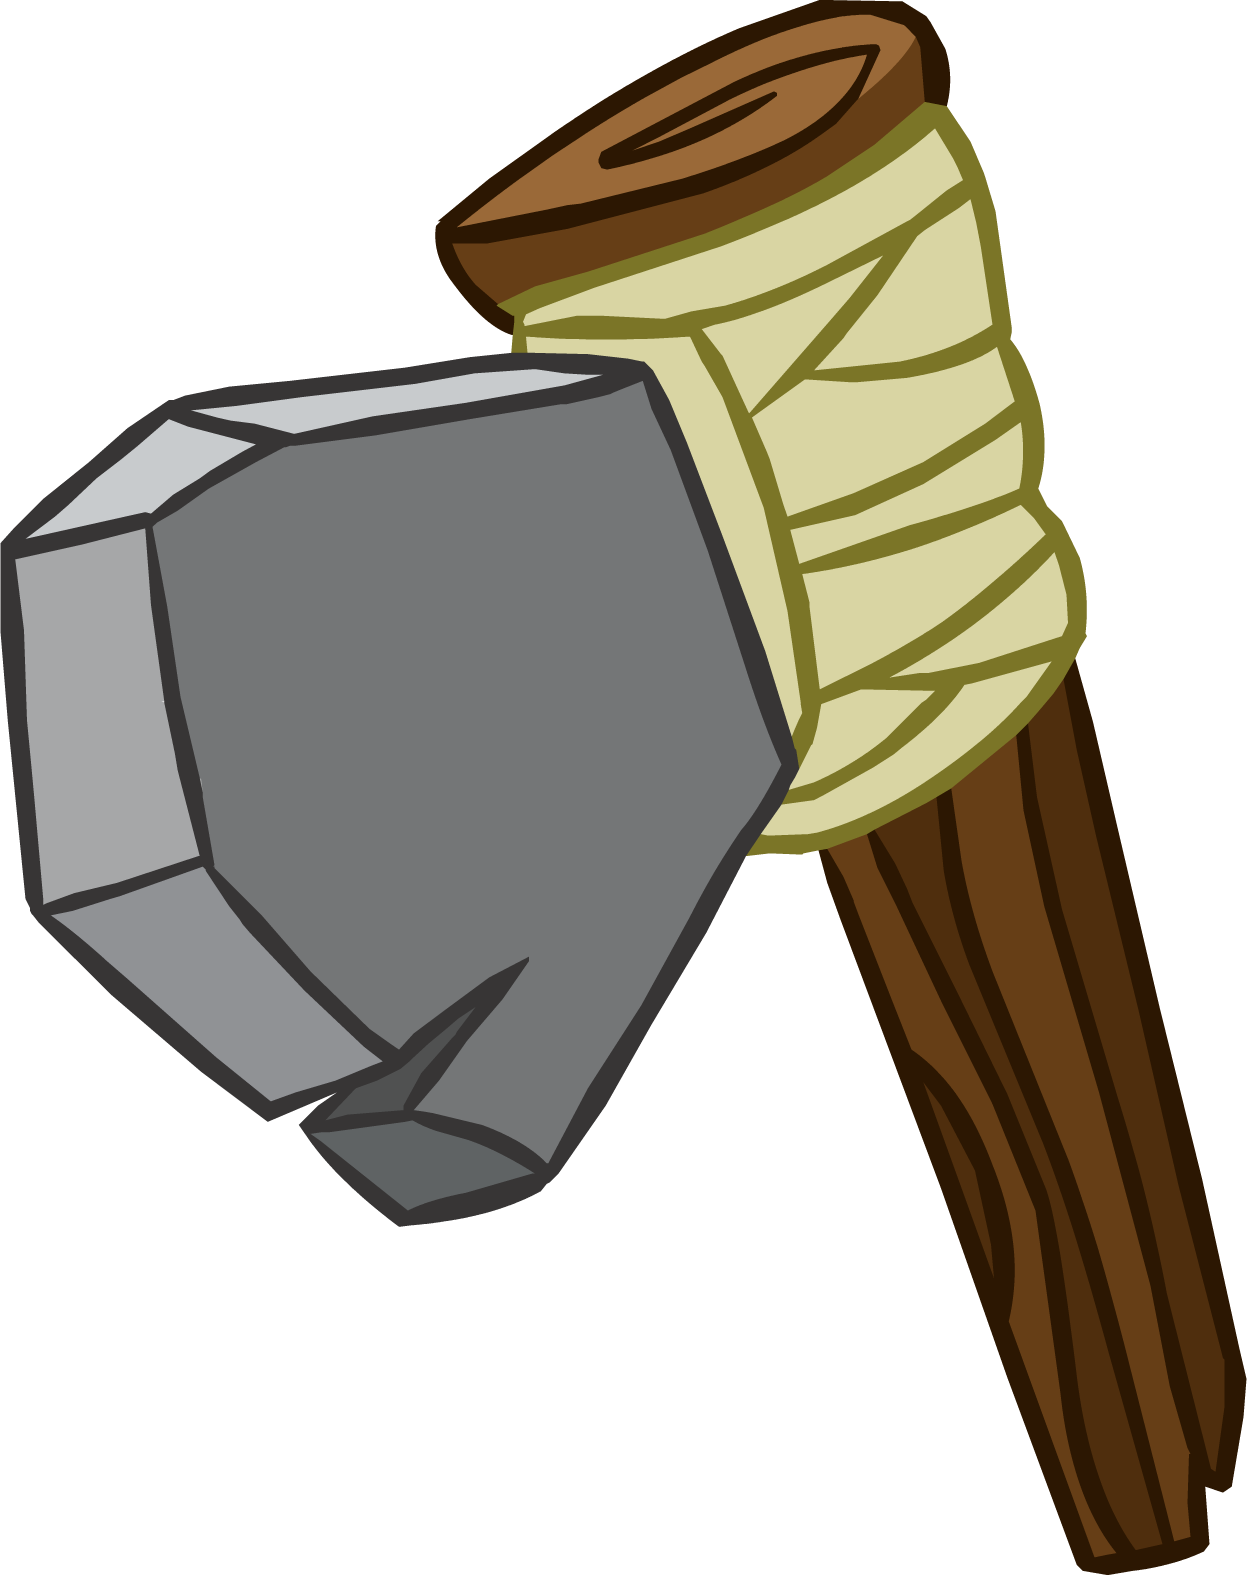 Hatchet from the book hatchet clipart png freeuse download Stone Hatchet | Club Penguin Wiki | FANDOM powered by Wikia png freeuse download